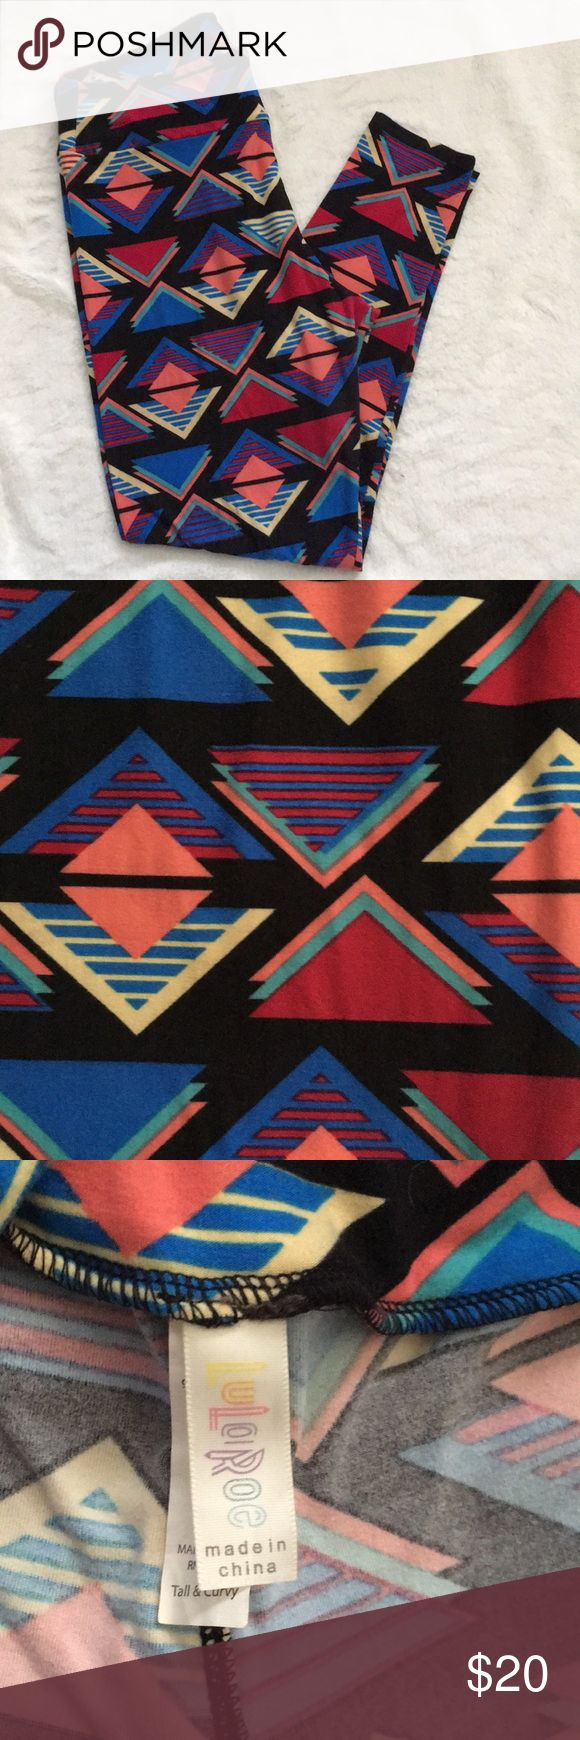 Geometric Print LuLaRoe TC Leggings Black LuLaRoe TC leggings with various colored (blue, green, yellow, orange, red) triangles.  Some triangles are solid and some are striped.  EUC with minimal signs of wear between the legs.  Super soft, made in China. LuLaRoe Pants Leggings